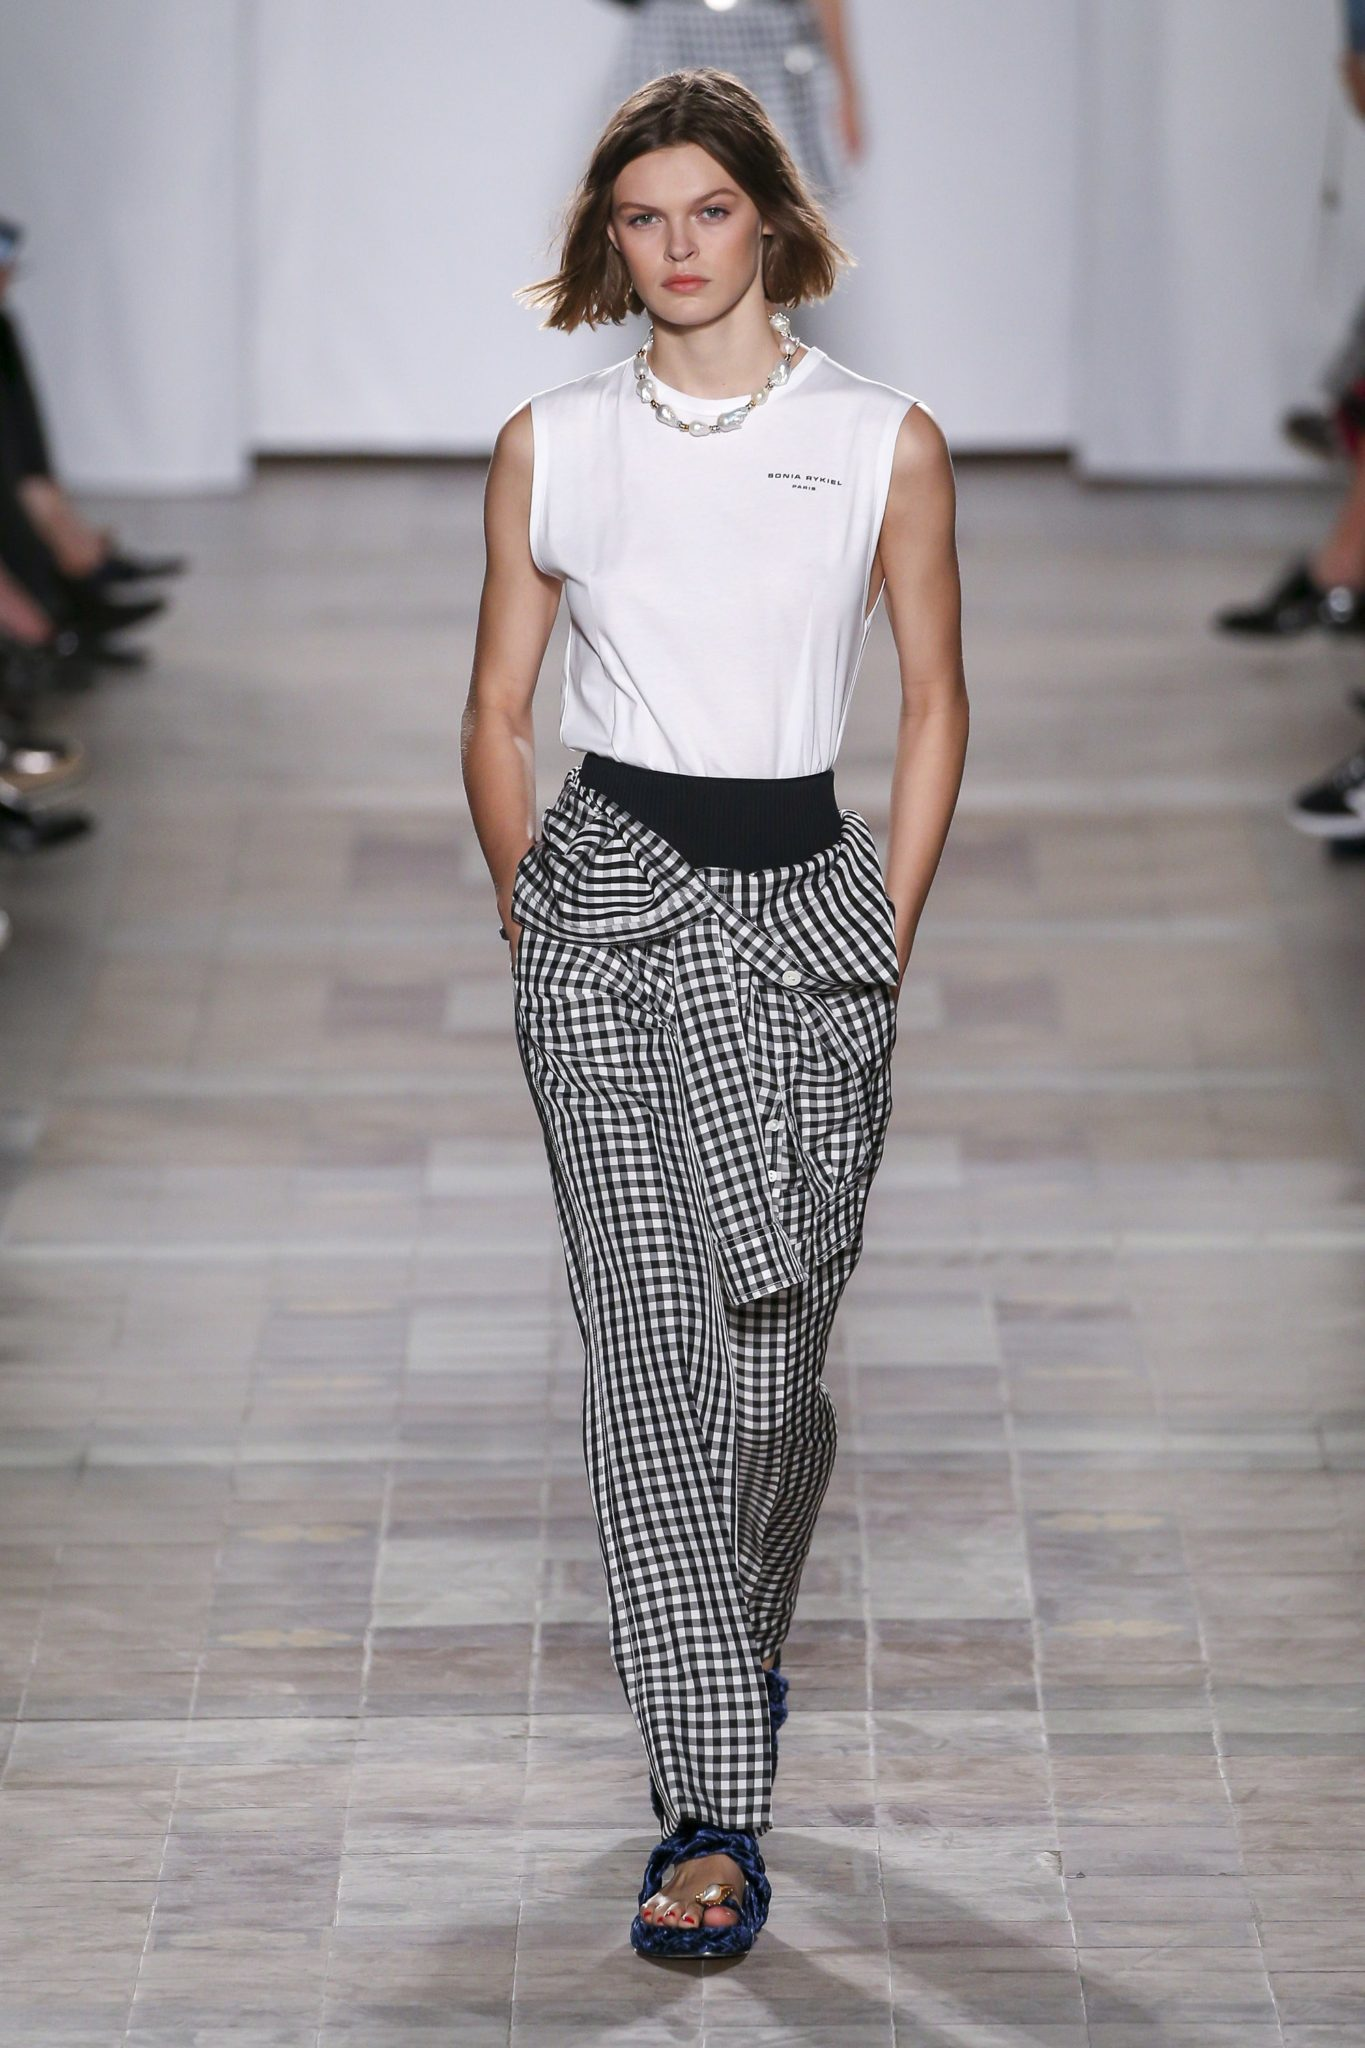 d2969d3609 Spring 2018 trends - Spring Fashion Week 2018 Coverage